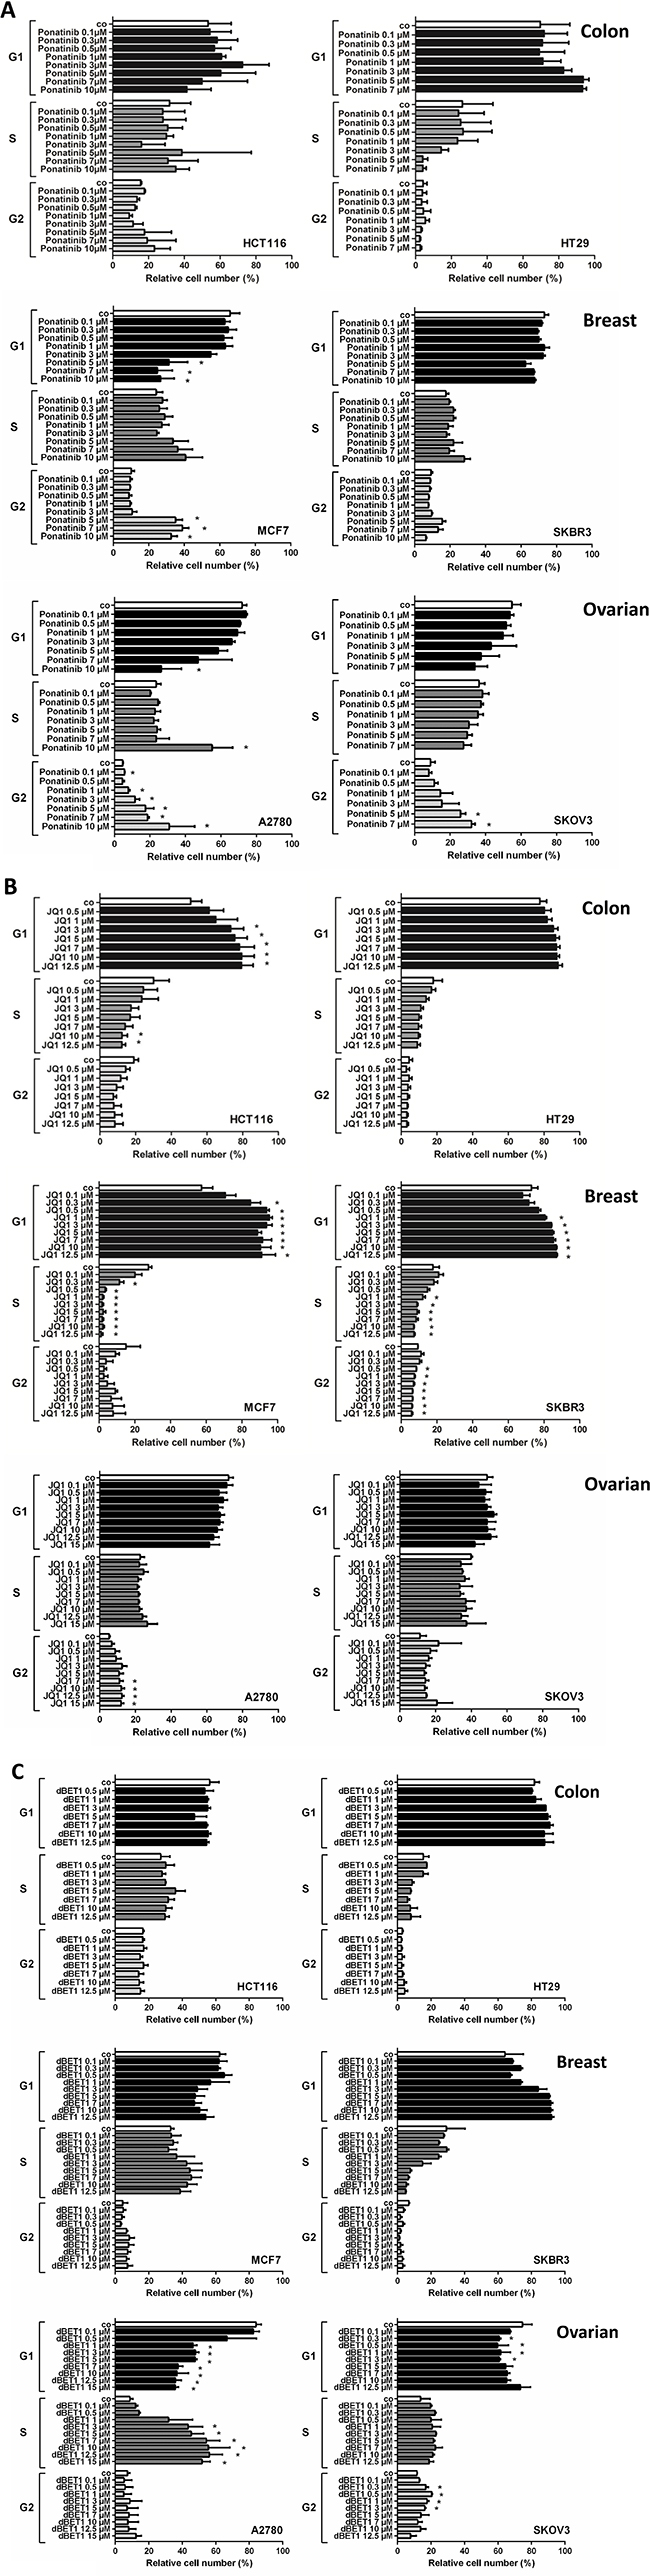 Effect of ponatinib, JQ1 and dBET1 on cell cycle distribution in colon, breast and ovarian cancer cells.